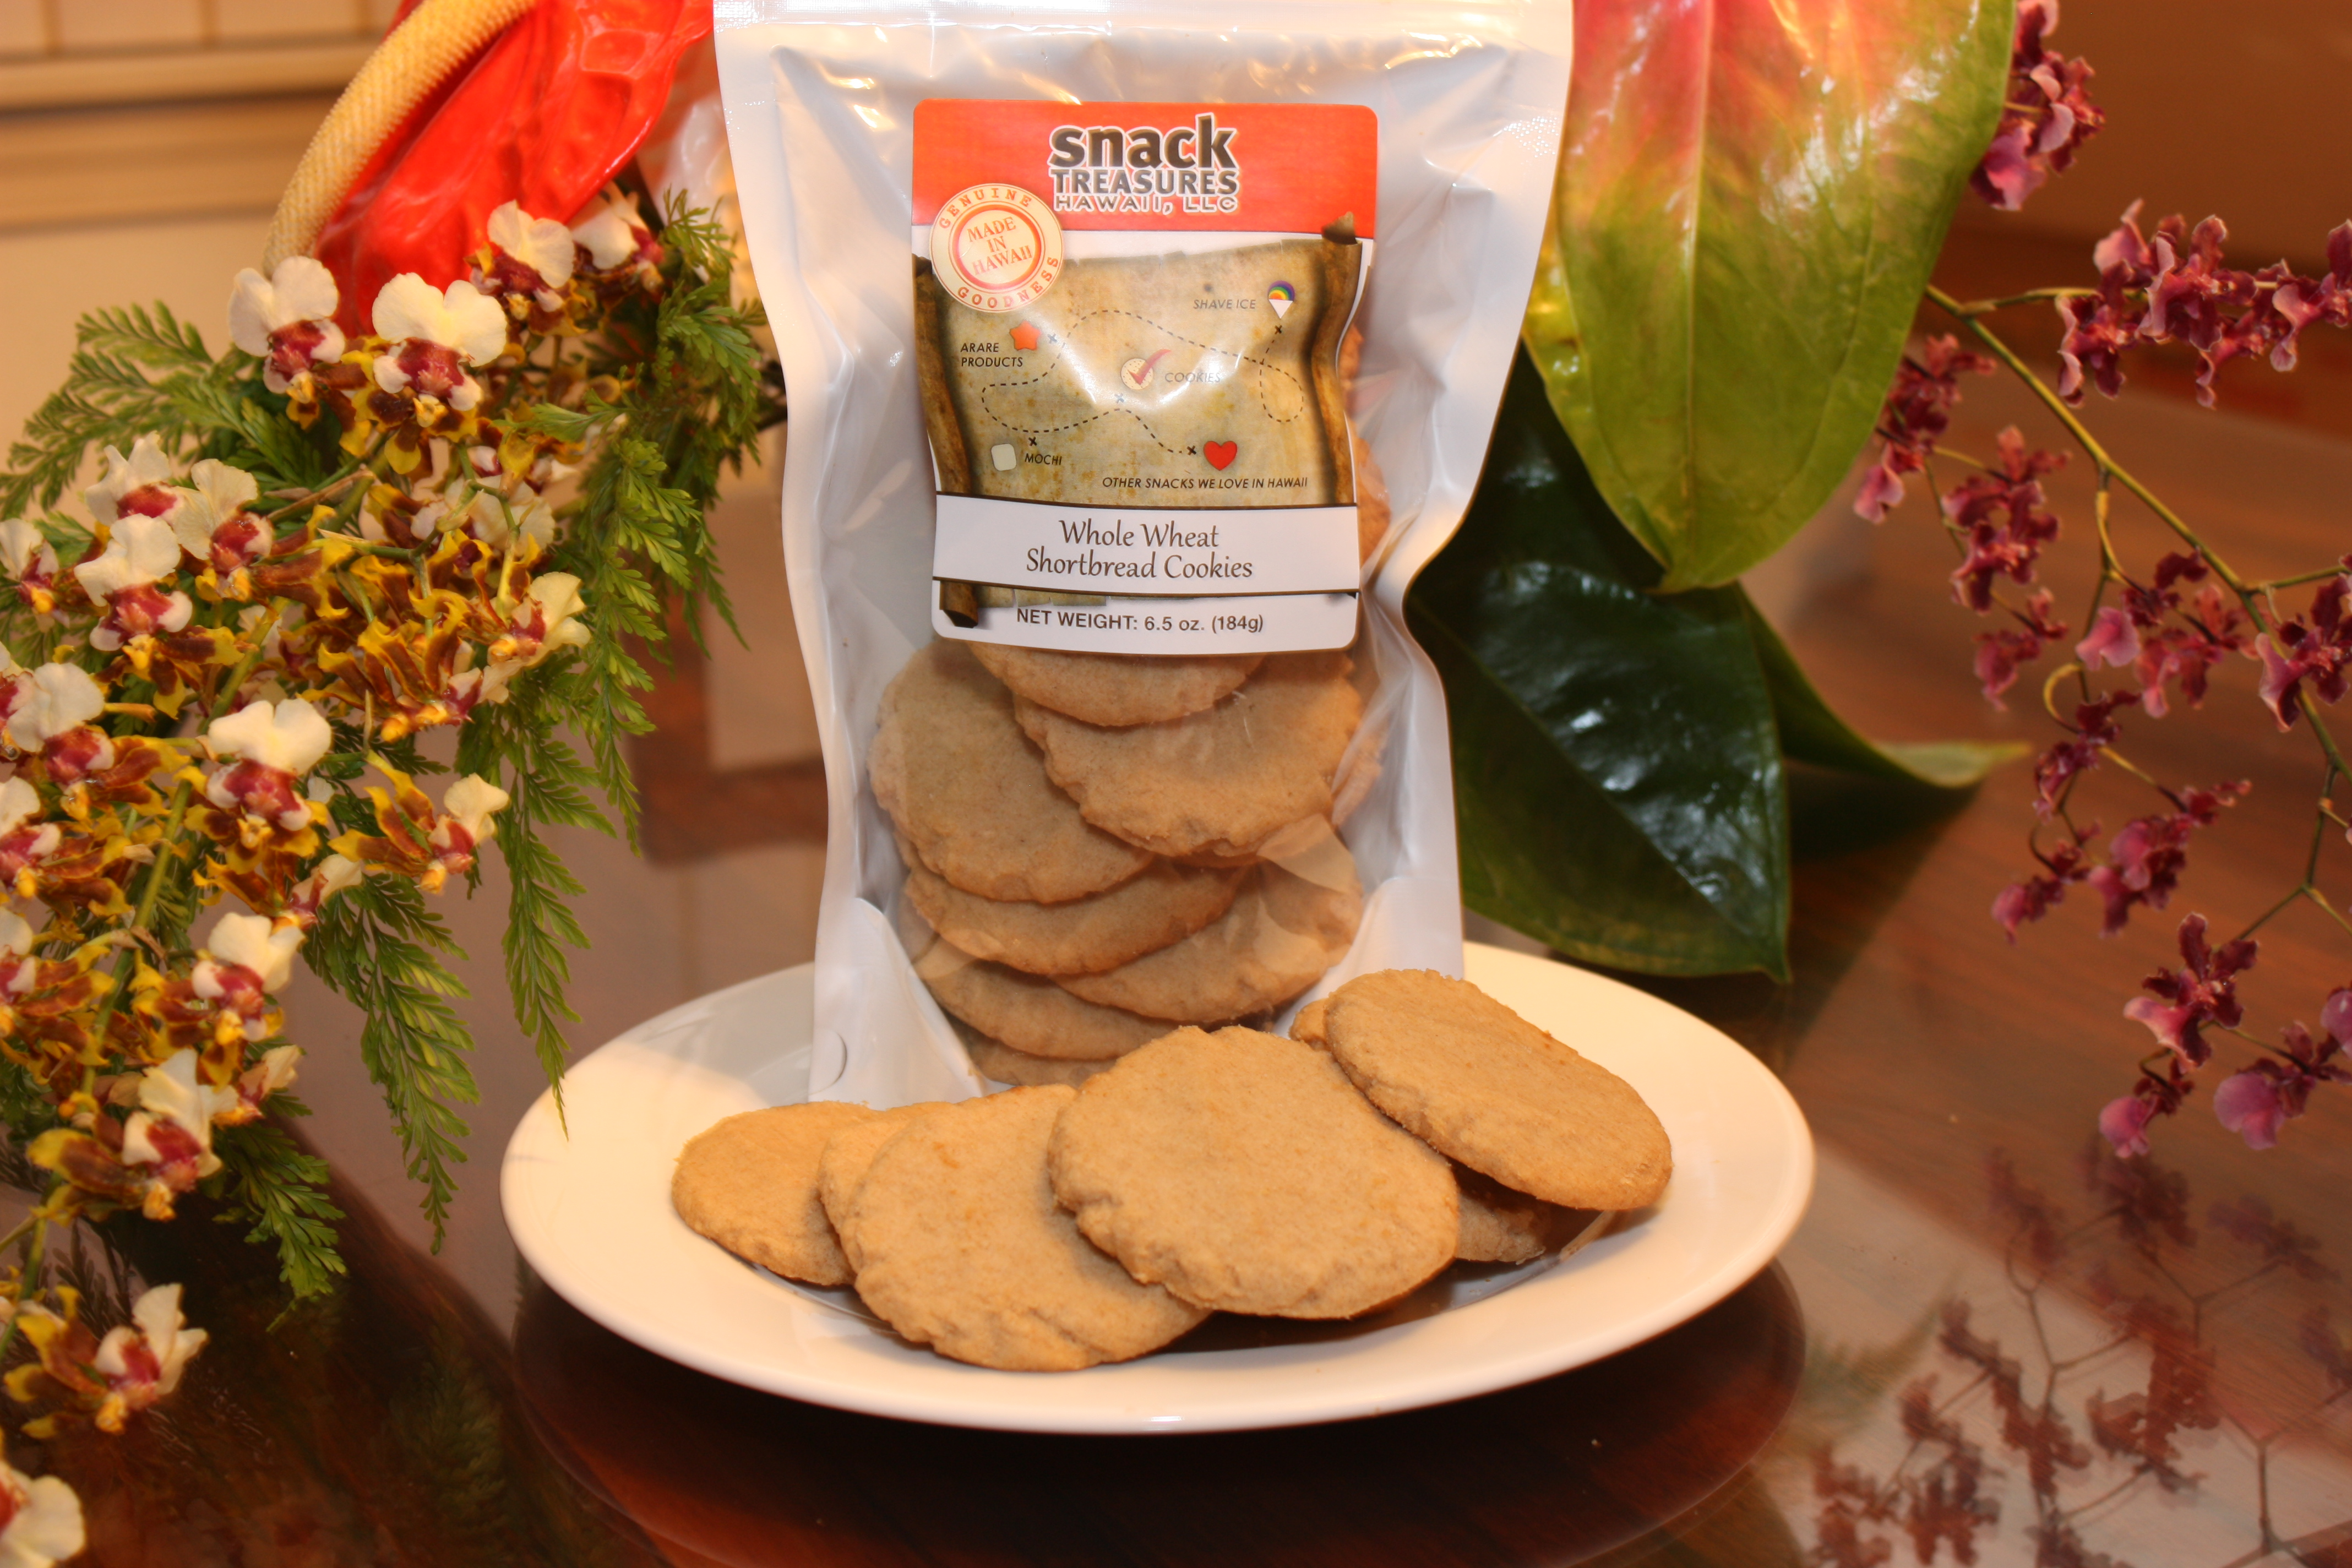 Whole Wheat Shortbread All Varieties - 4 ounces - $5 6.5 ounces - $7